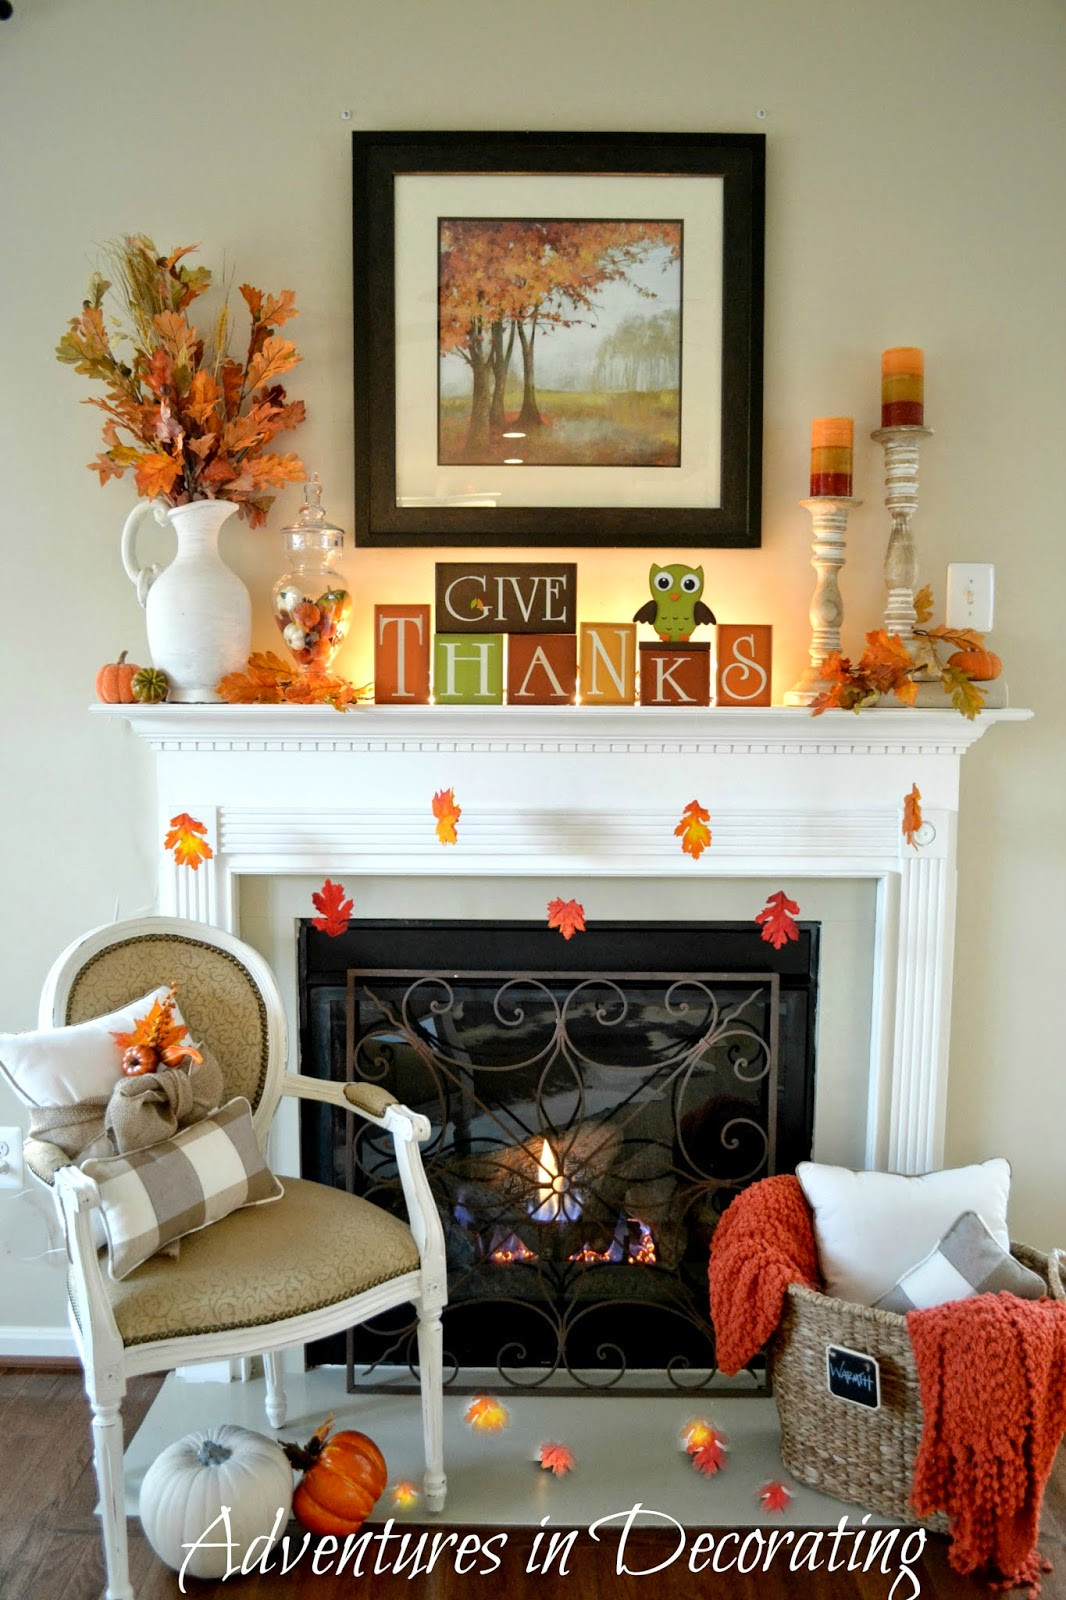 Fall Decor For Fireplace Mantel  Adventures in Decorating Our Simple Fall Mantel